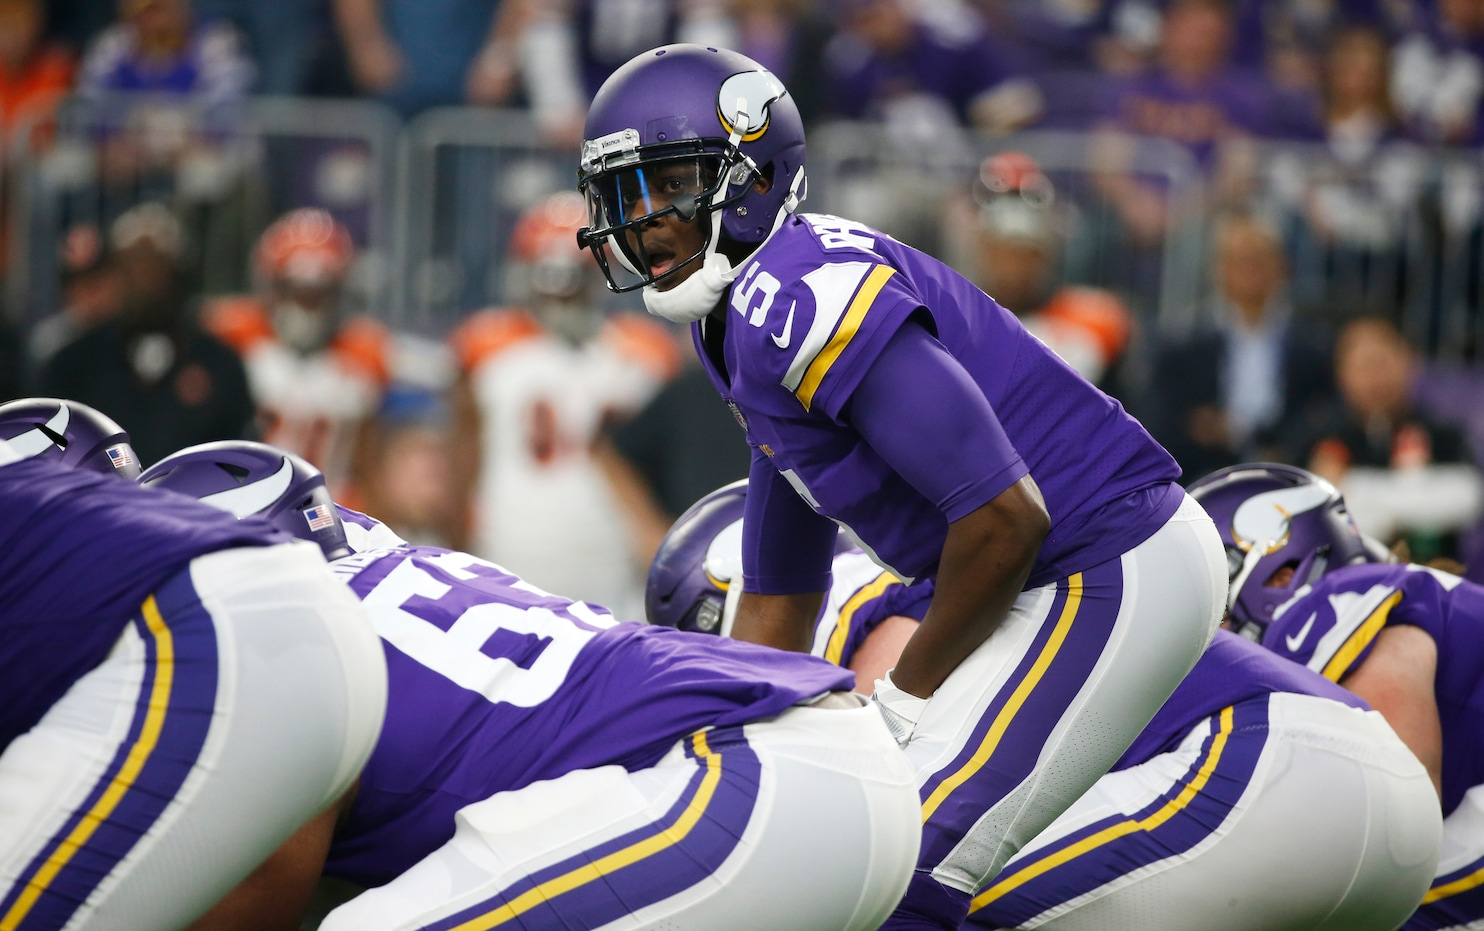 After nearly losing his leg, Teddy Bridgewater makes an emotional return for the Vikings - The ...